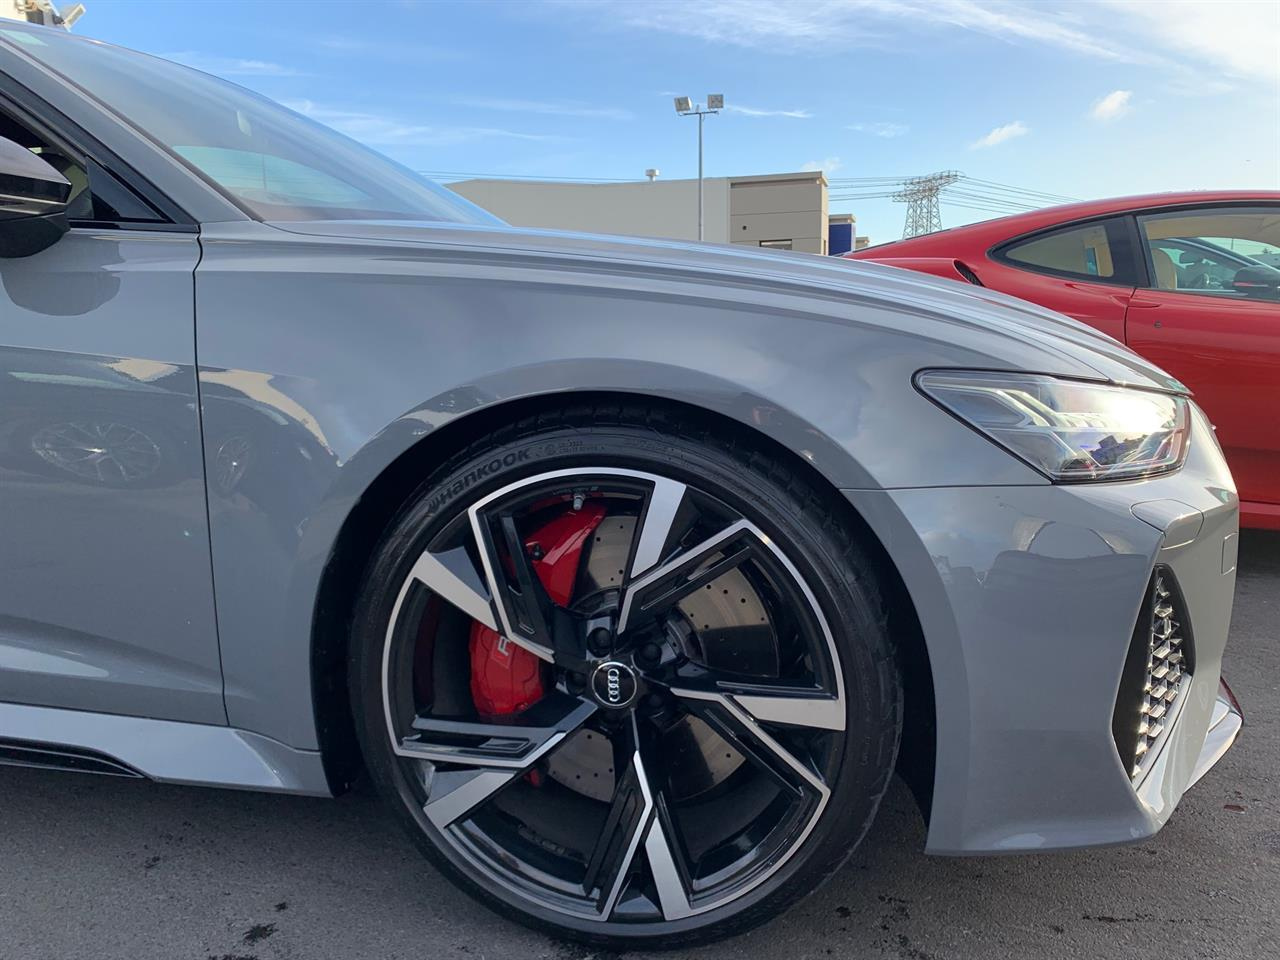 image-5, 2020 Audi RS6 4.0 V8T 441KW Launch Edition at Christchurch